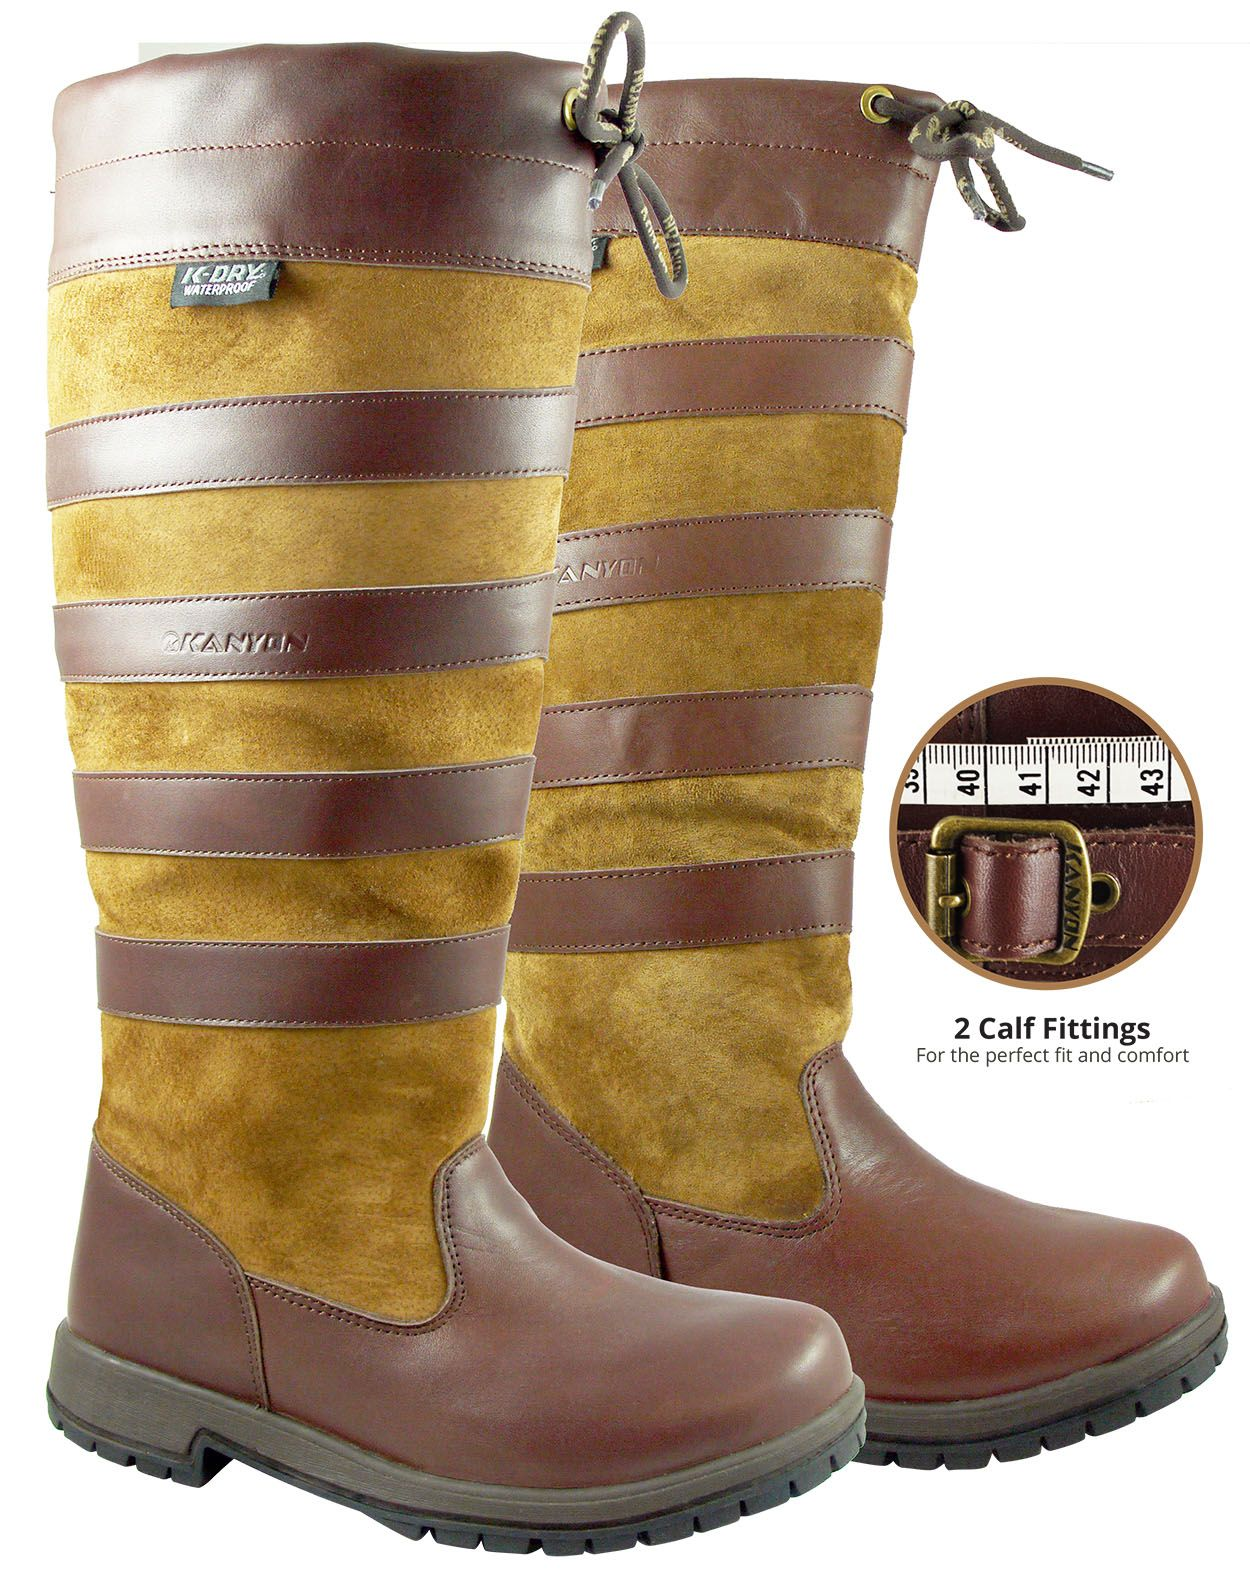 Beech & Maple, full grain leather and suede waterproof country boot in 2 calf fittings. From £134.95